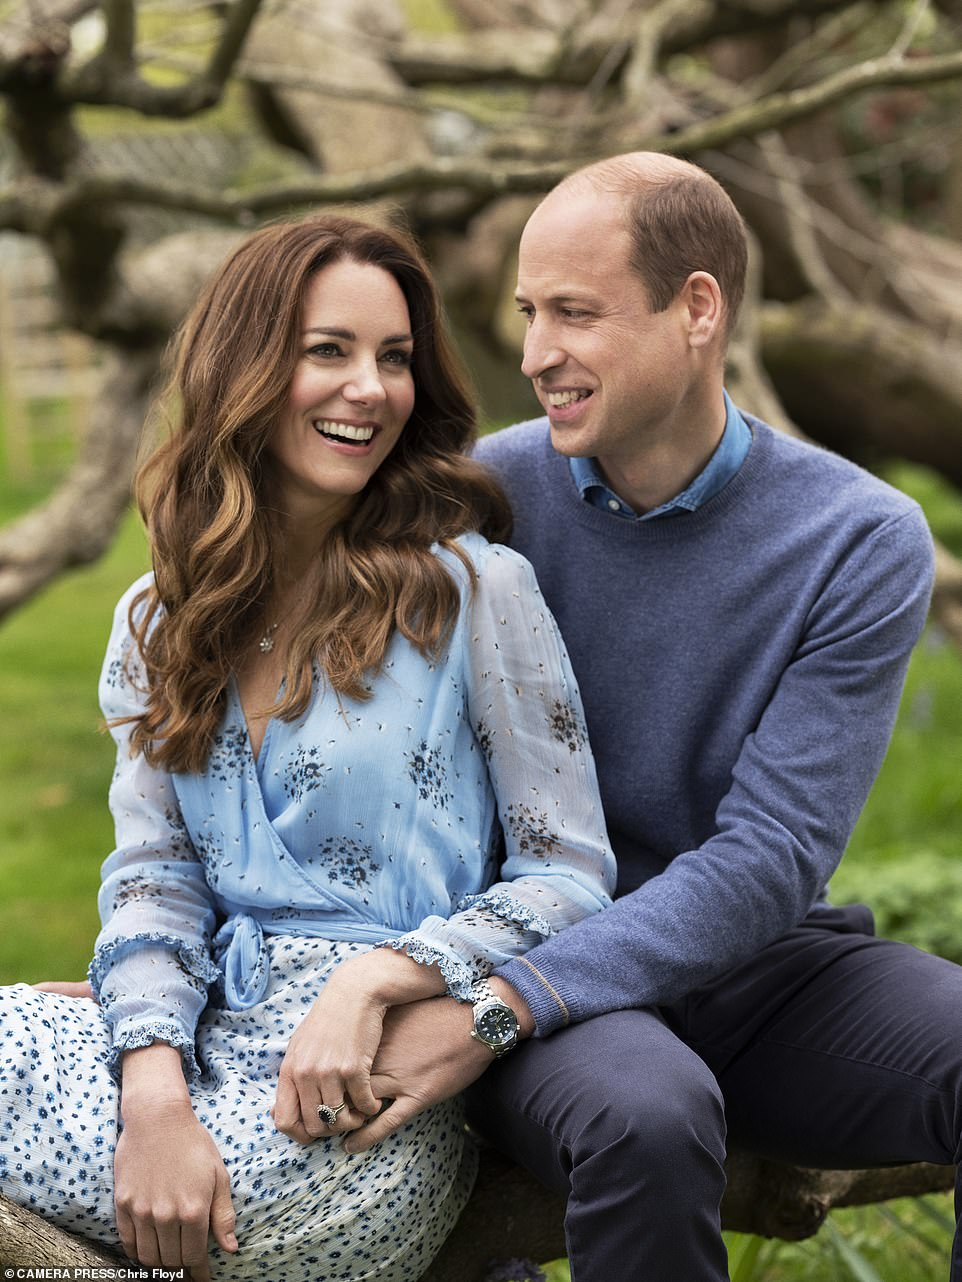 Tender moment: Kate and William hold hands in a new image captured in the garden at Kensington Palace. Pictured, Kate opted for a £195 bohemian-style blue patterned wrap dress by Ghost, while Prince William donned a familiar blue jumper and shirt